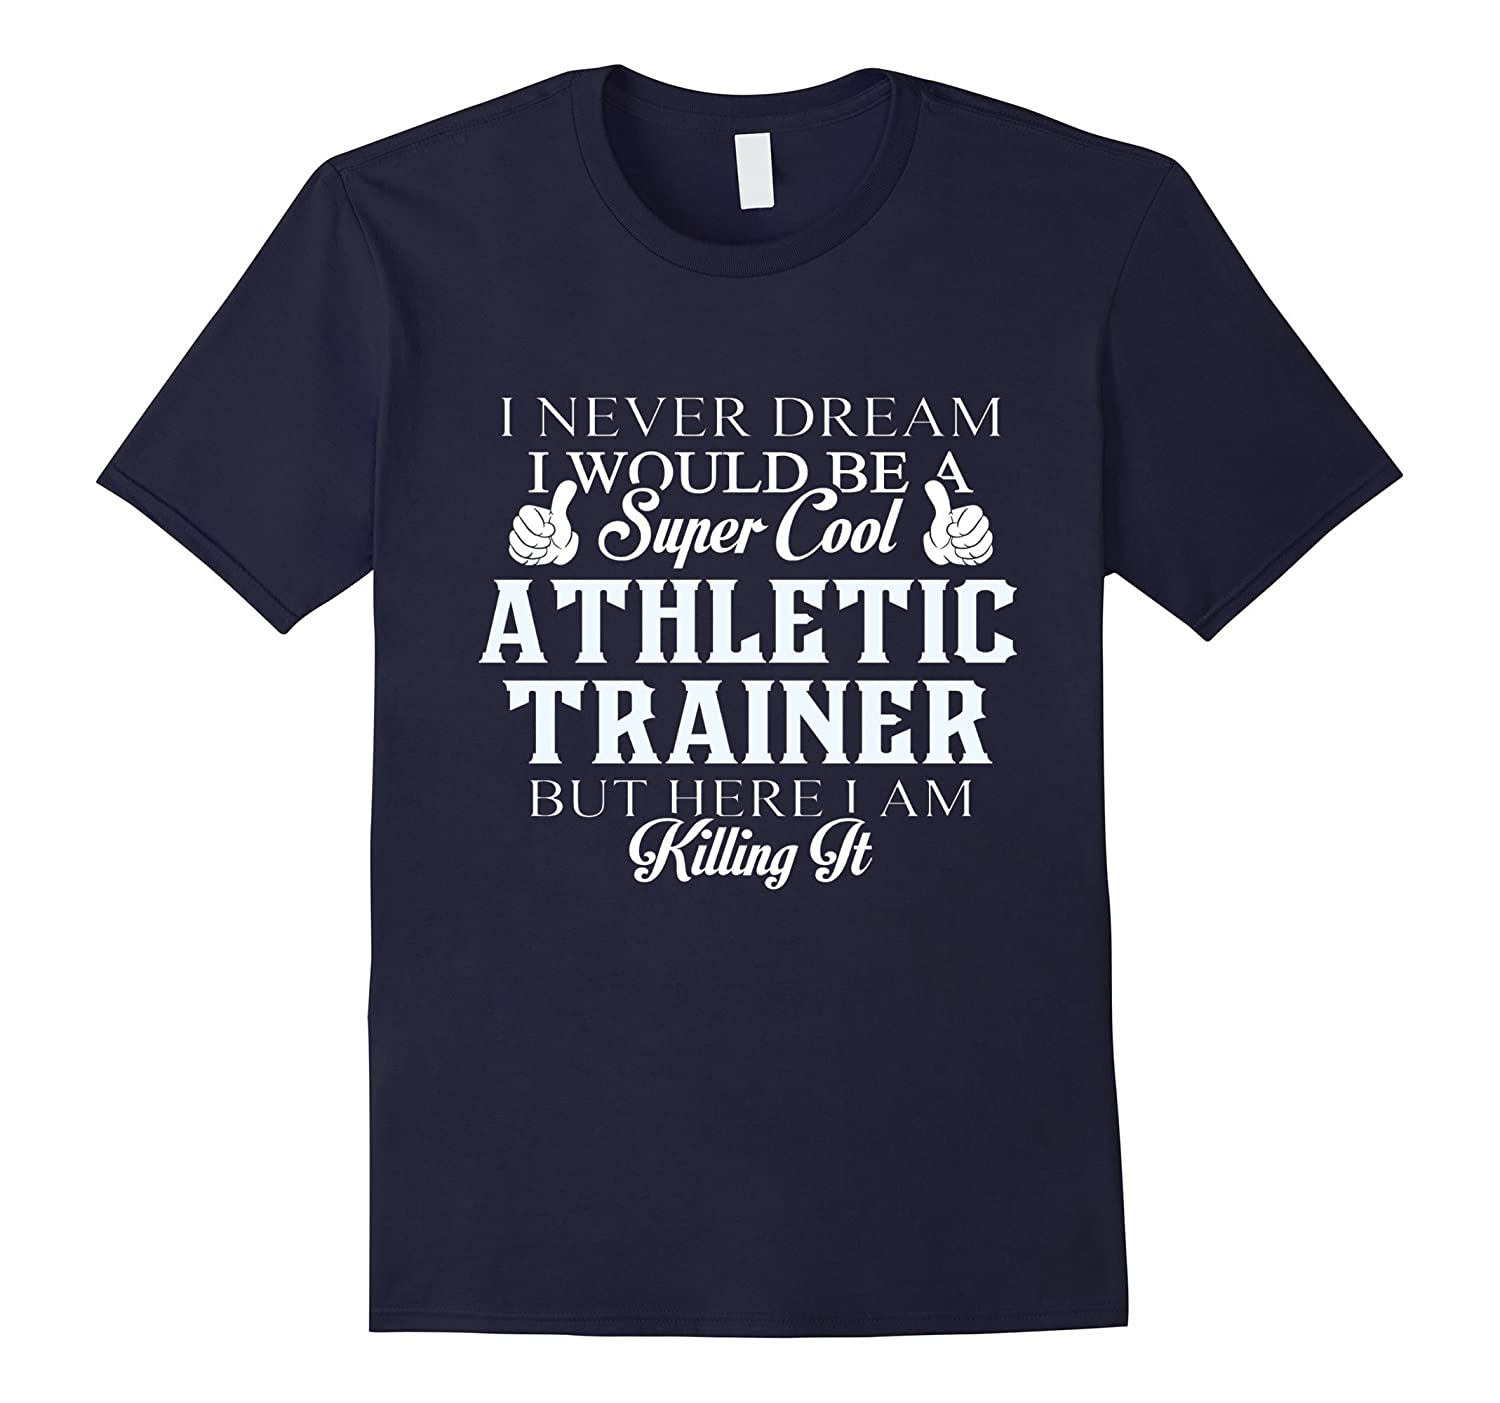 Dreamed would super cool Athletic trainer killing it-Vaci